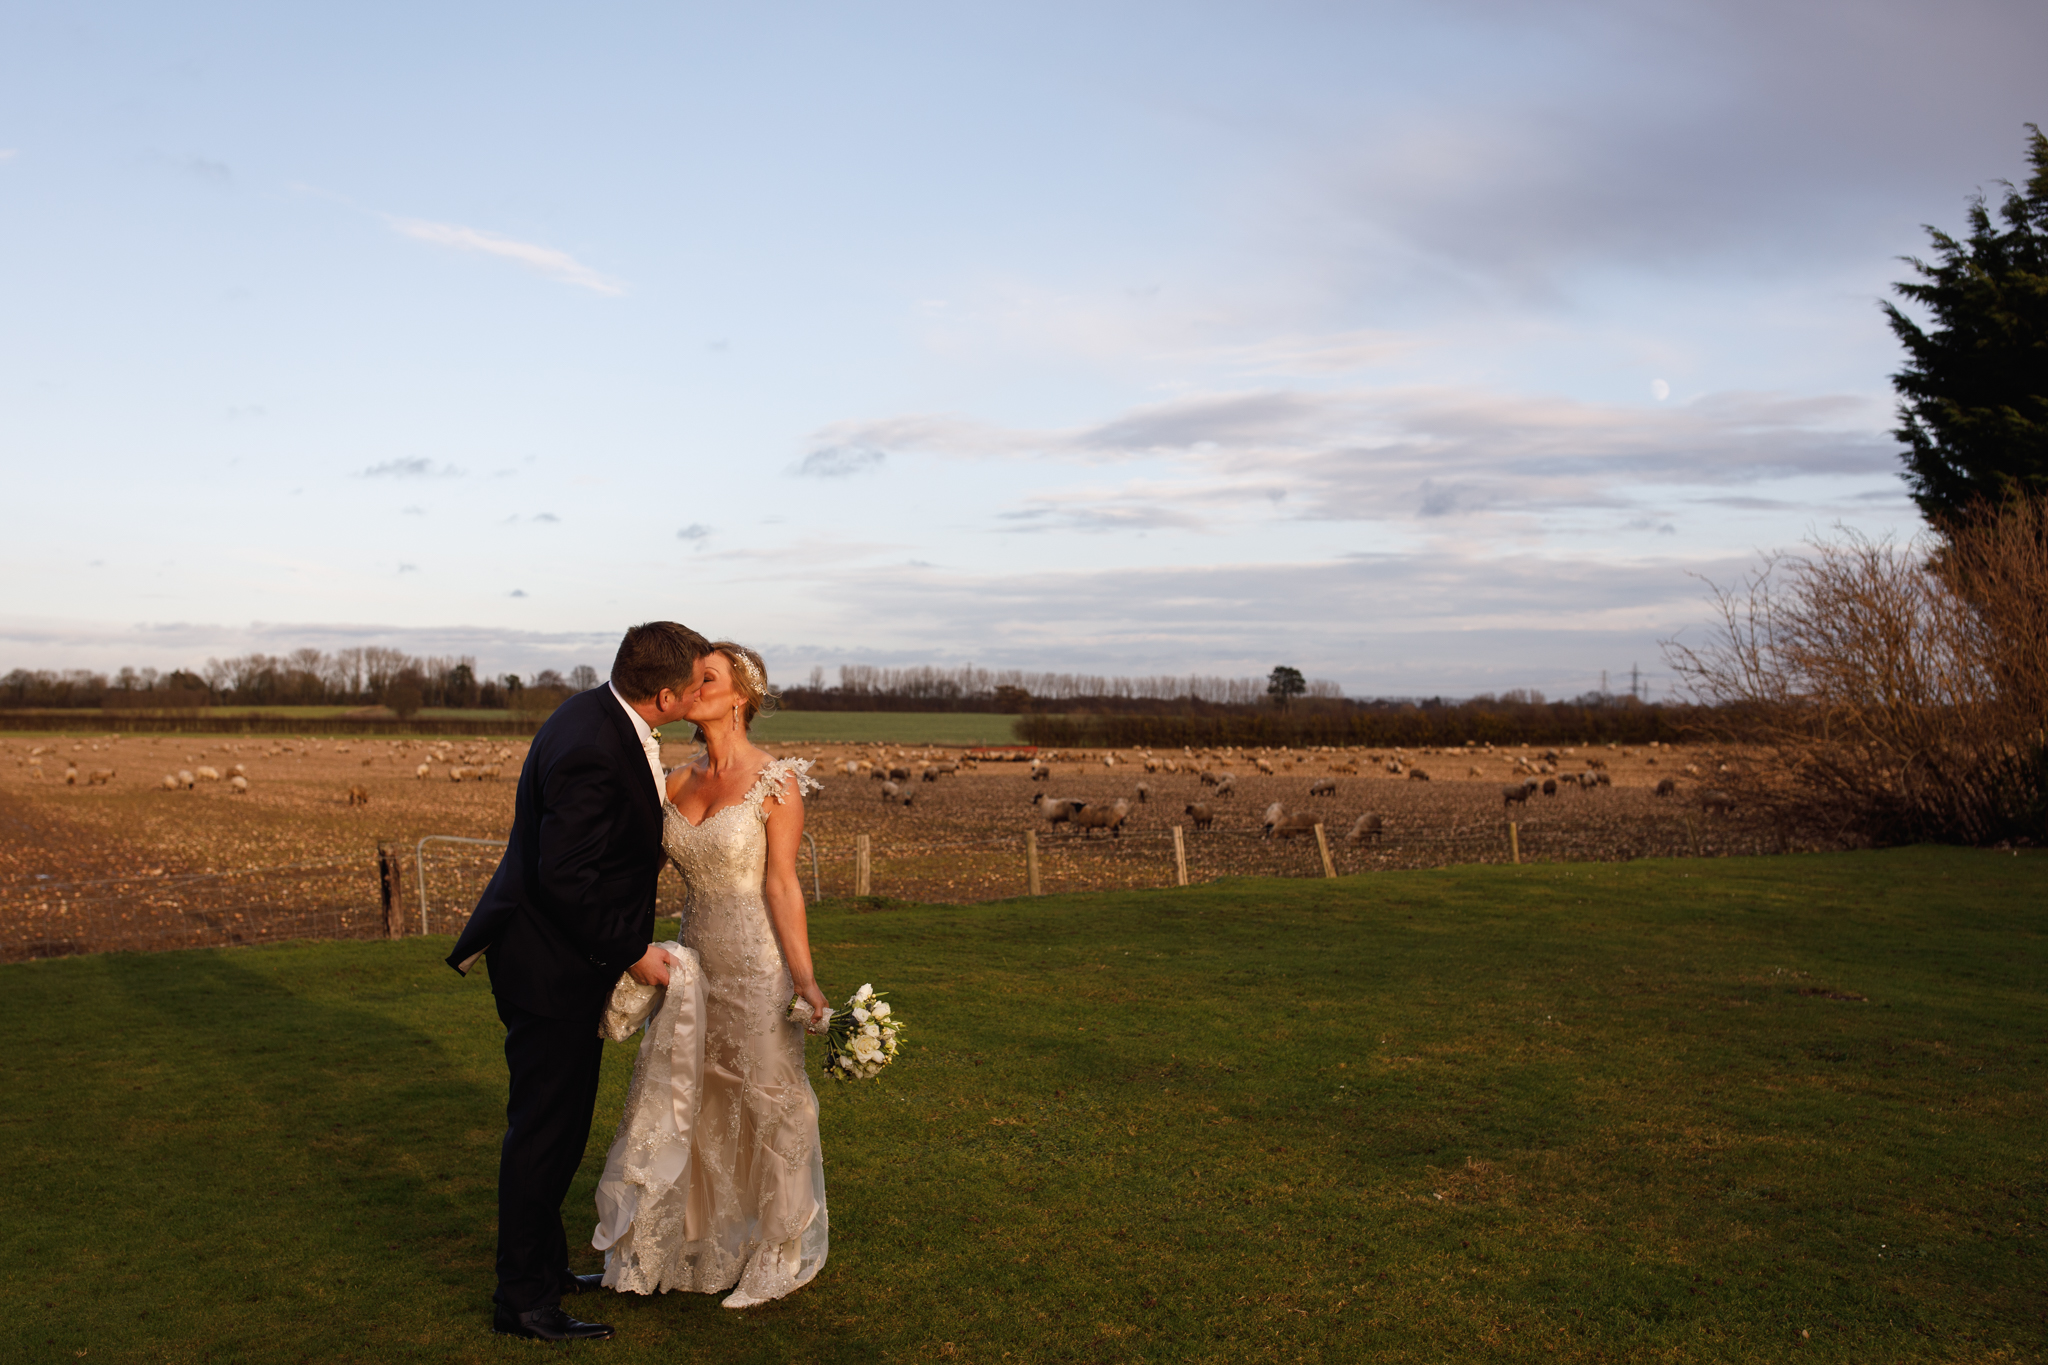 Robbie & Kelly's Wedding at Winters Barns